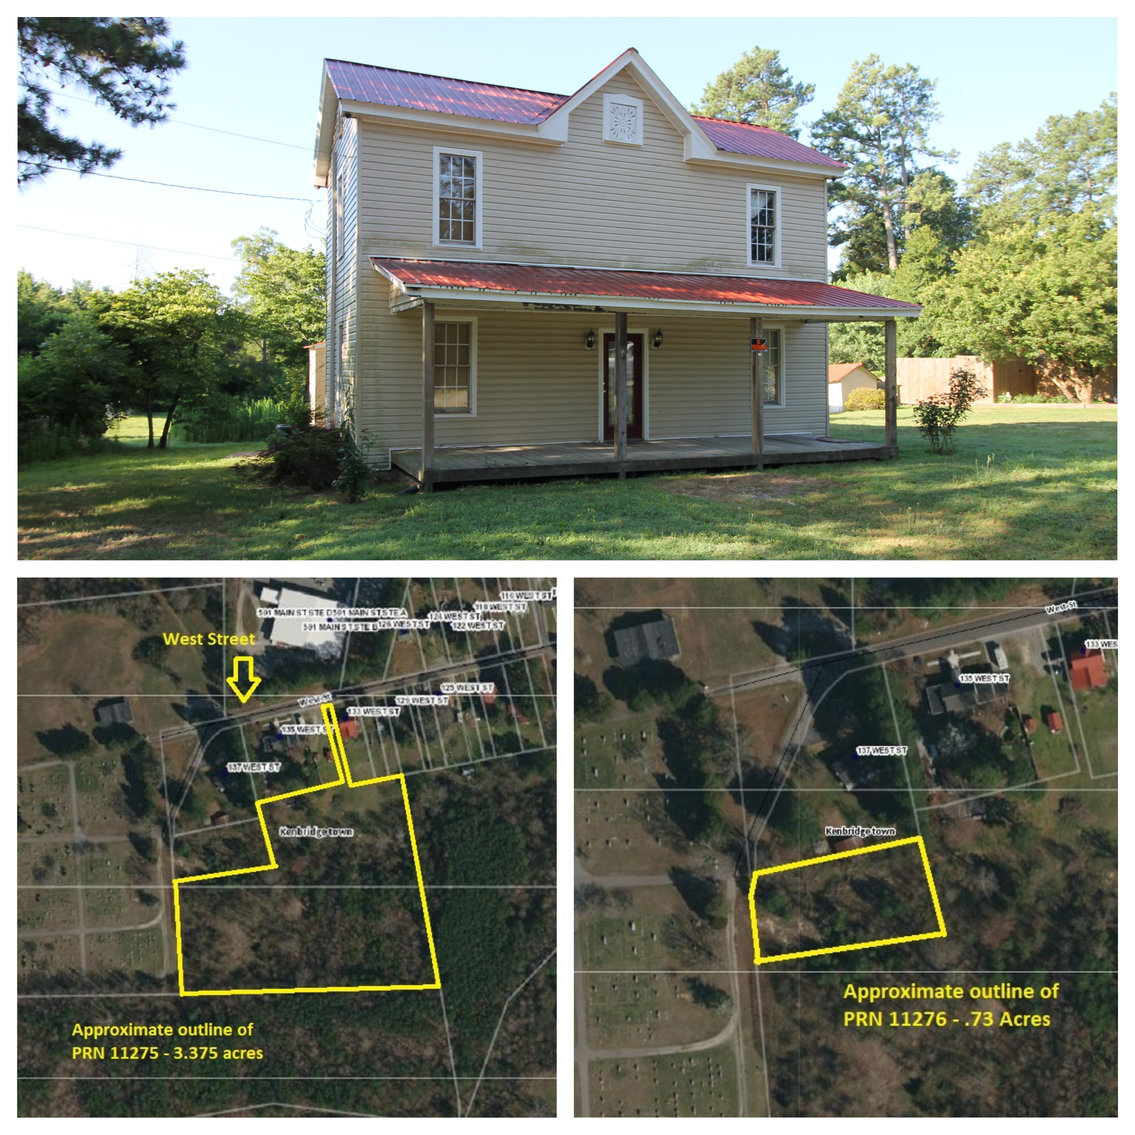 3 BR/1 BA Home on .3 +/- Acre Lot AND Adjacent 3.3 +/- Acre & .7 +/- Acre Lots--SELLS to the HIGHEST BIDDER!!